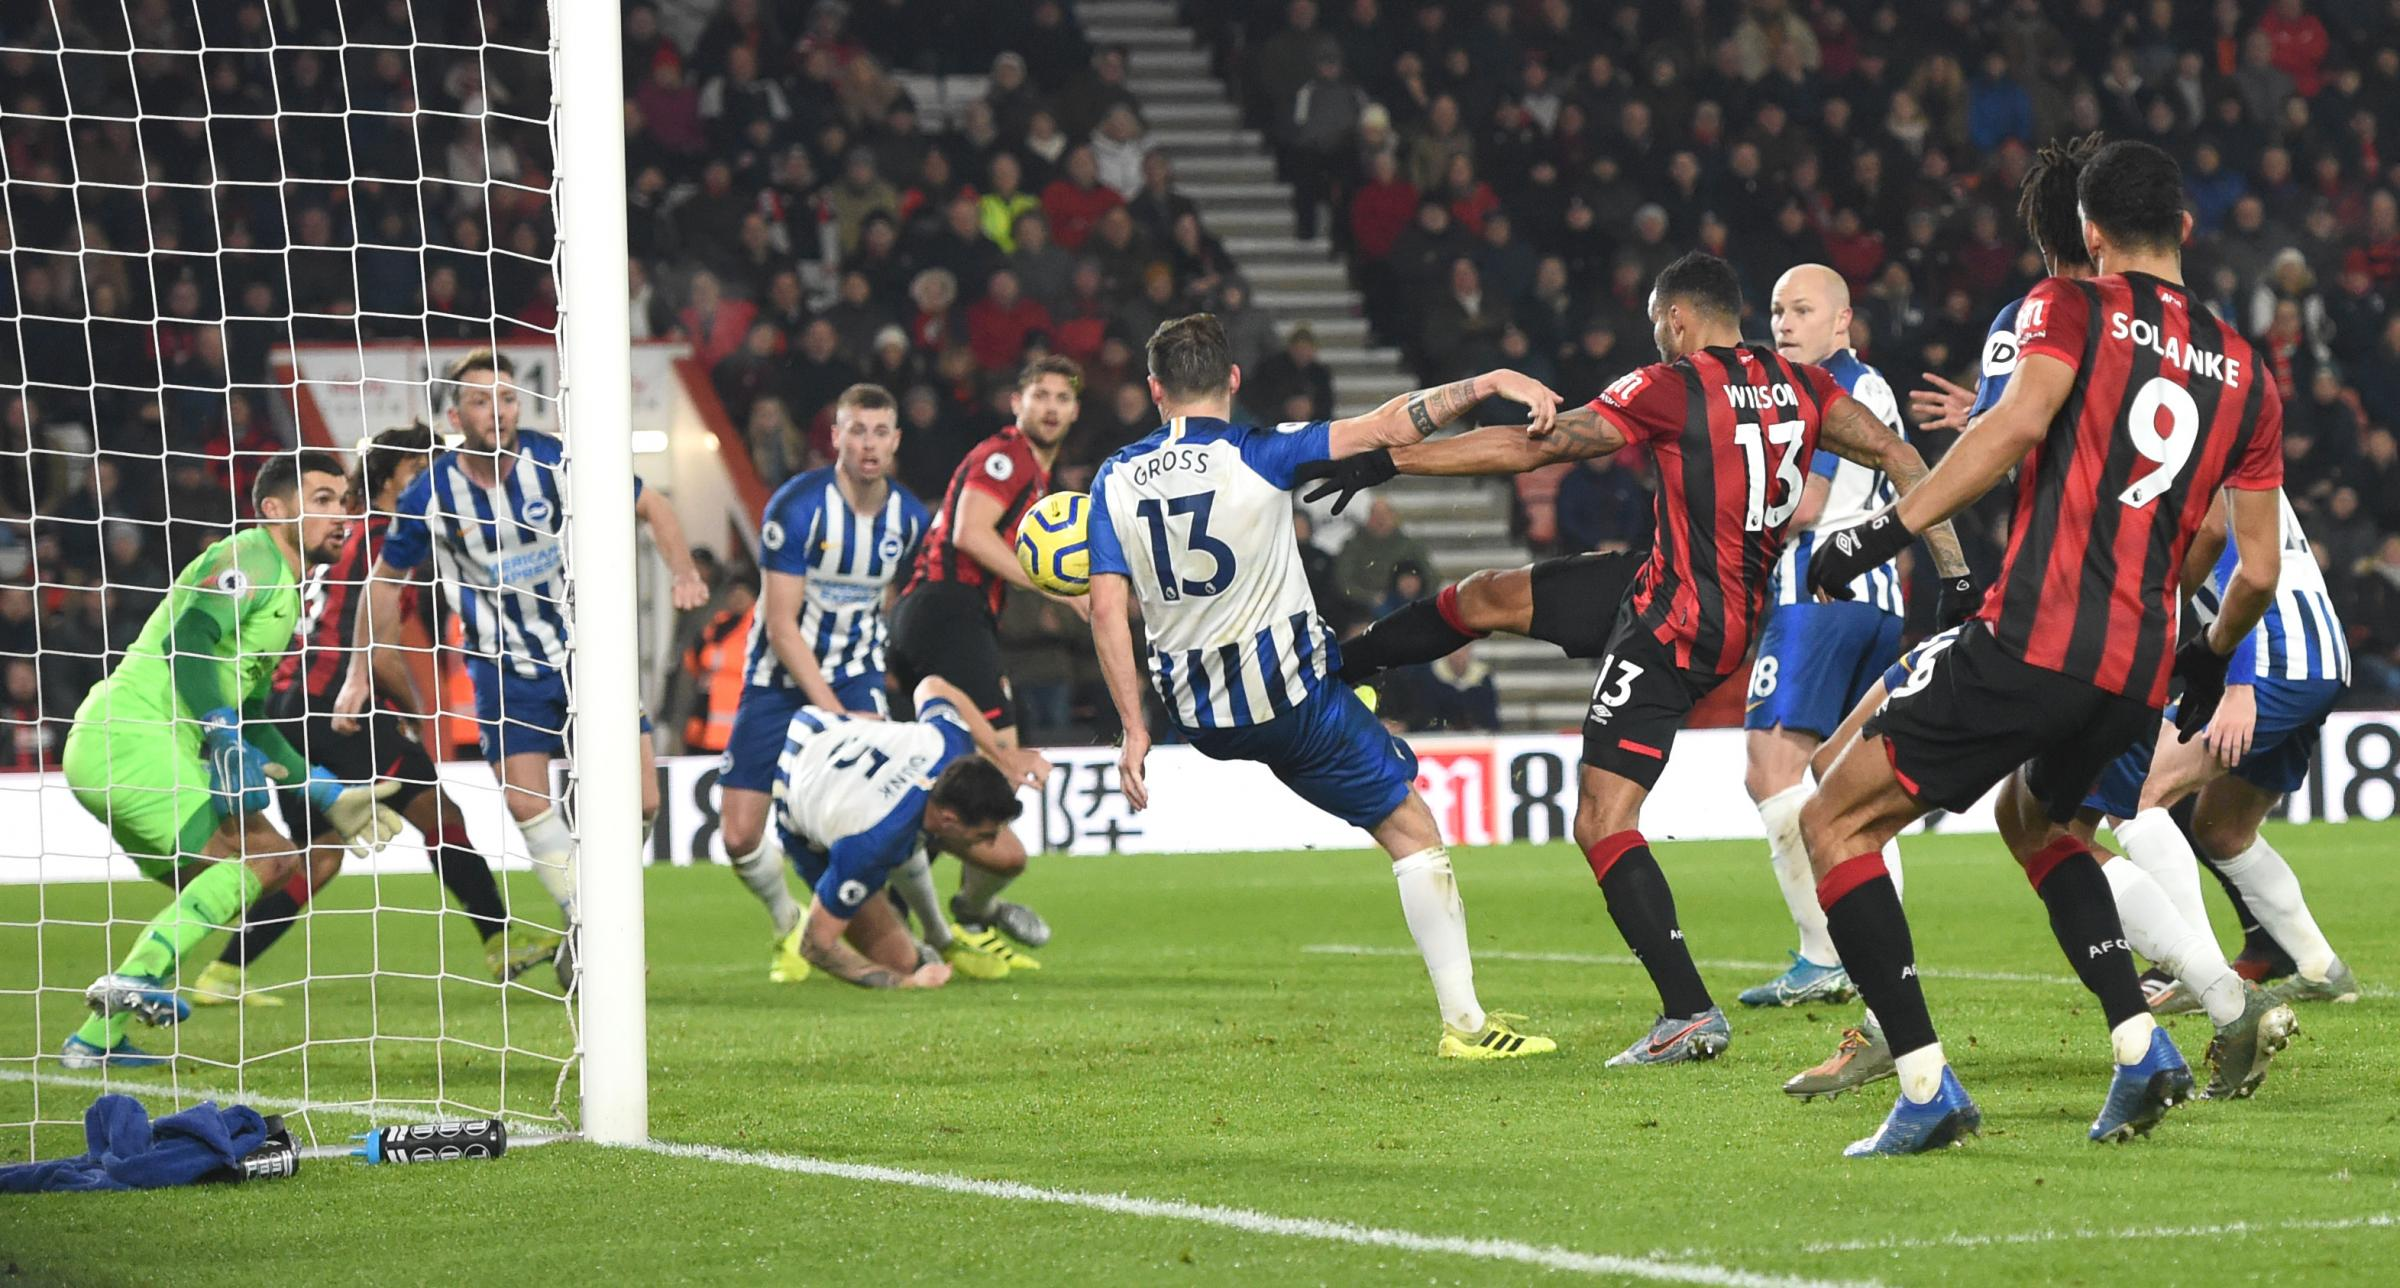 Follow Albion in action against Bournemouth: Wilson makes it 3-0